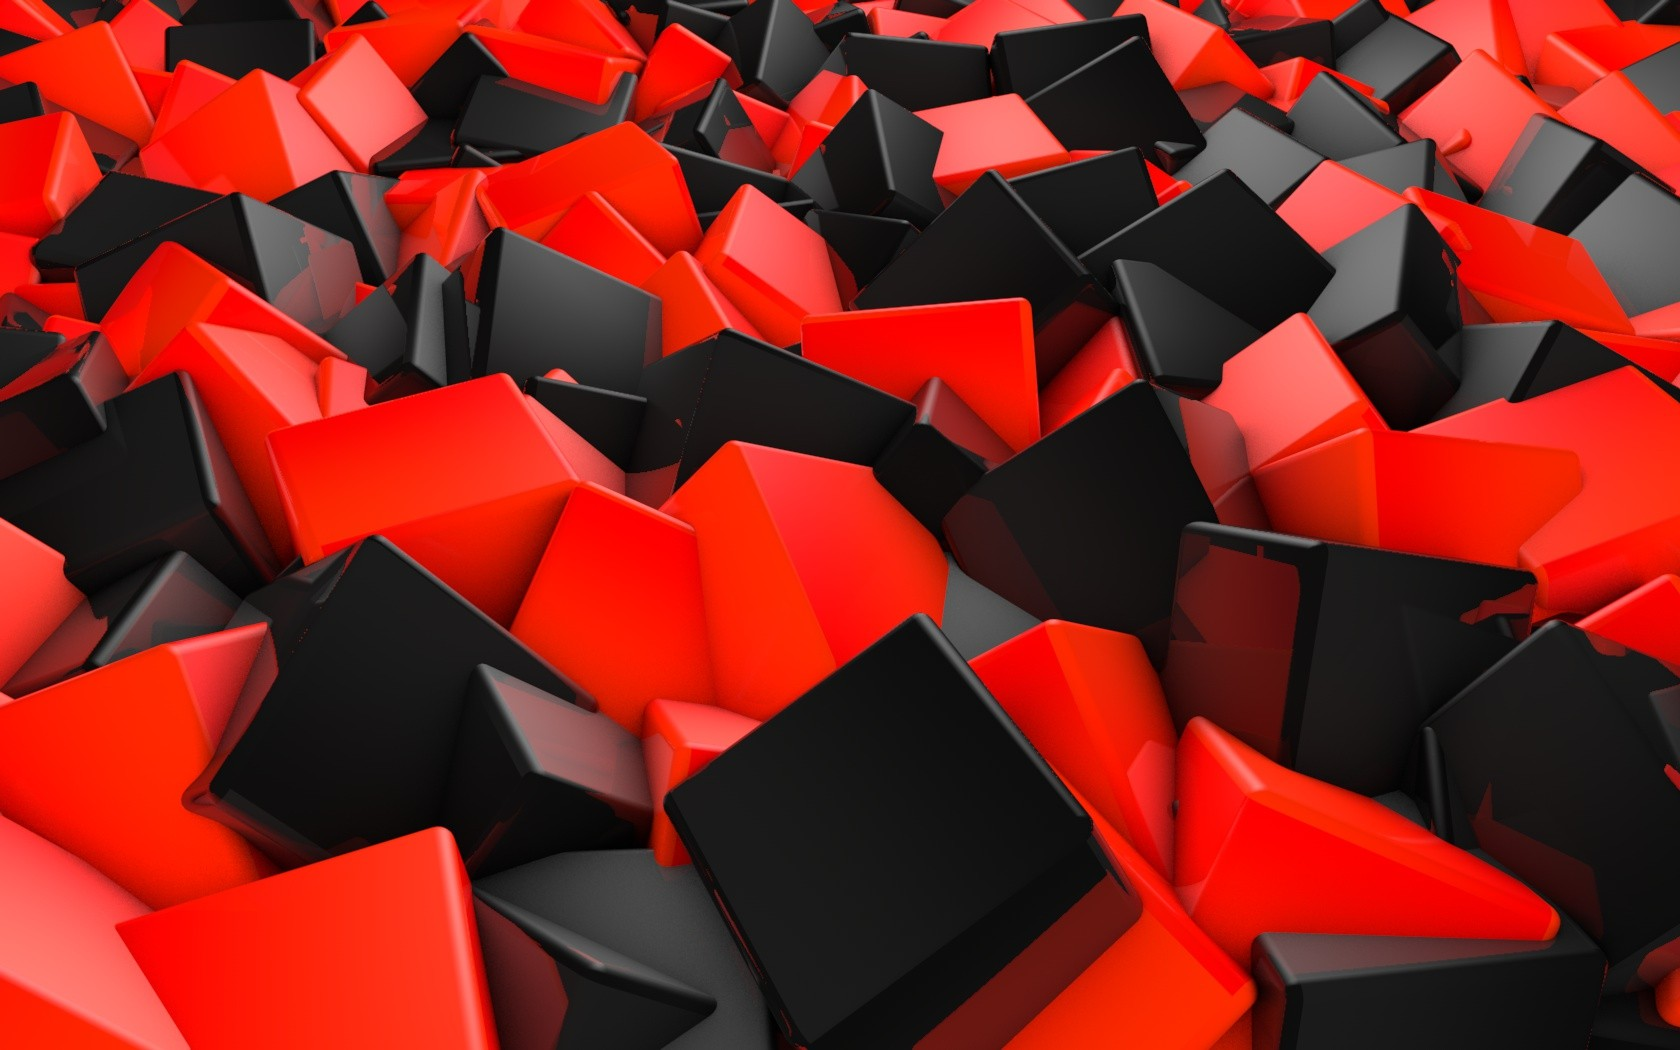 Hd wallpaper red and black - Hd Wallpaper Red And Black Black And Red Abstract Wallpaper 2628 Hd Wallpapers In Abstract